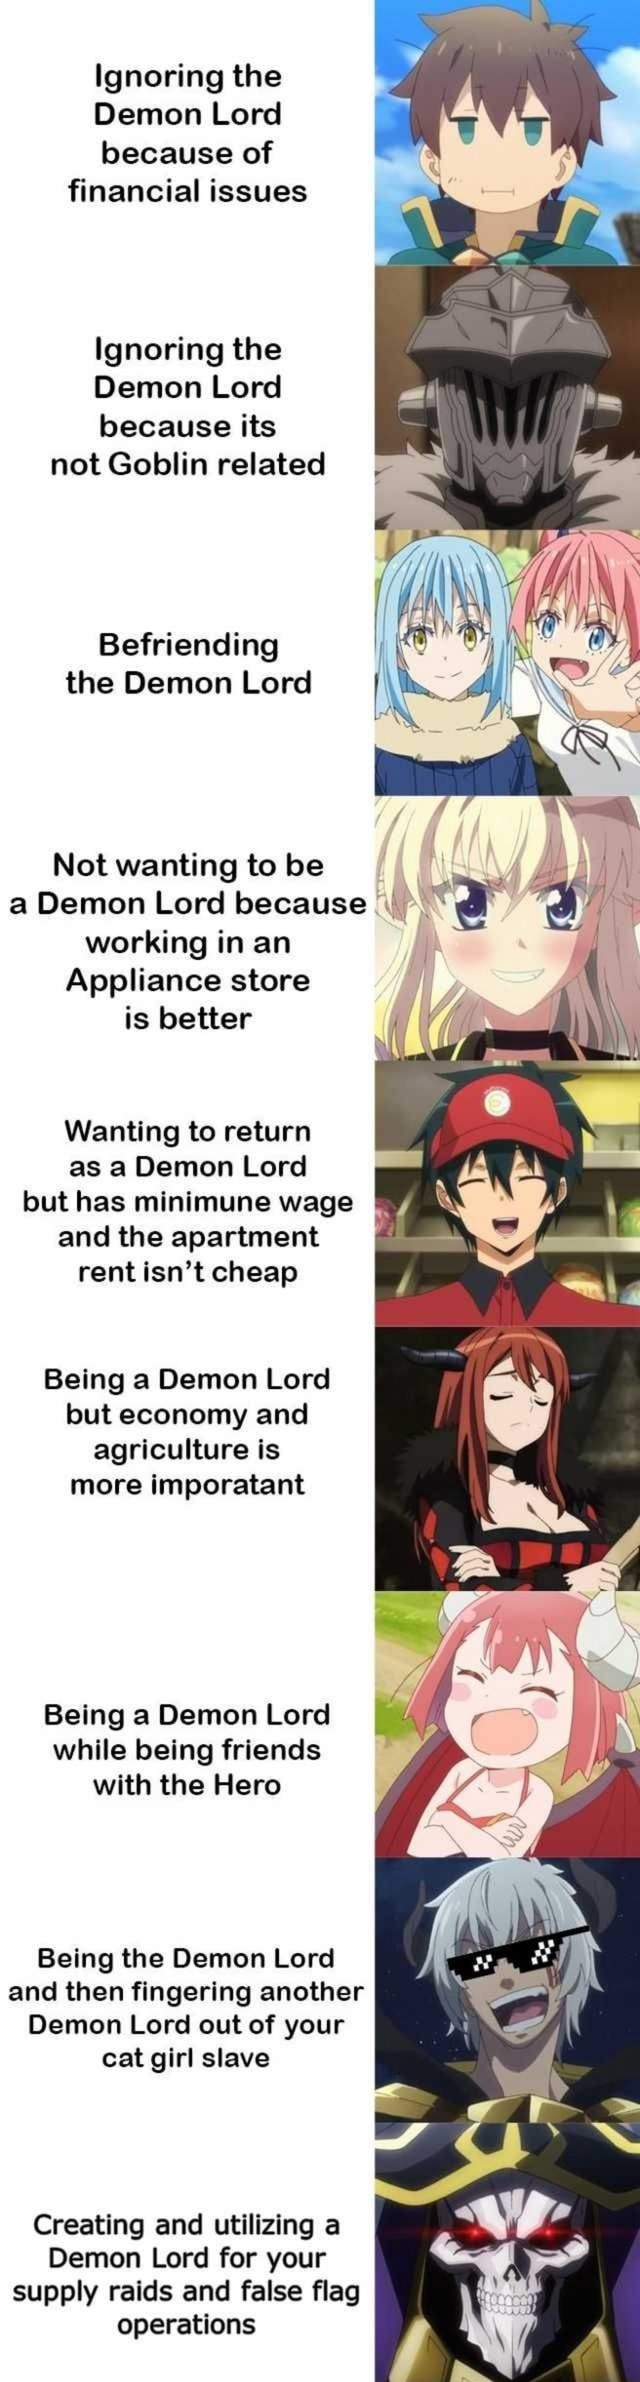 Ignoring the Demon Lord because of financial issues Ignoring the Demon Lord because its not Goblin related Befriending the Demon Lord Not wanting to be a Demon Lord because working in an Appliance store is better Wanting to return as a Demon Lord but has minimune wage and the apartment rent isn't cheap Being a Demon Lord but economy and agriculture is more imporatant Being a Demon Lord while being friends with the Hero Being the Demon Lord and then fingering another Demon Lord out of your cat girl slave Creating and utilizing a Demon Lord for your supply raids and false flag operations memes